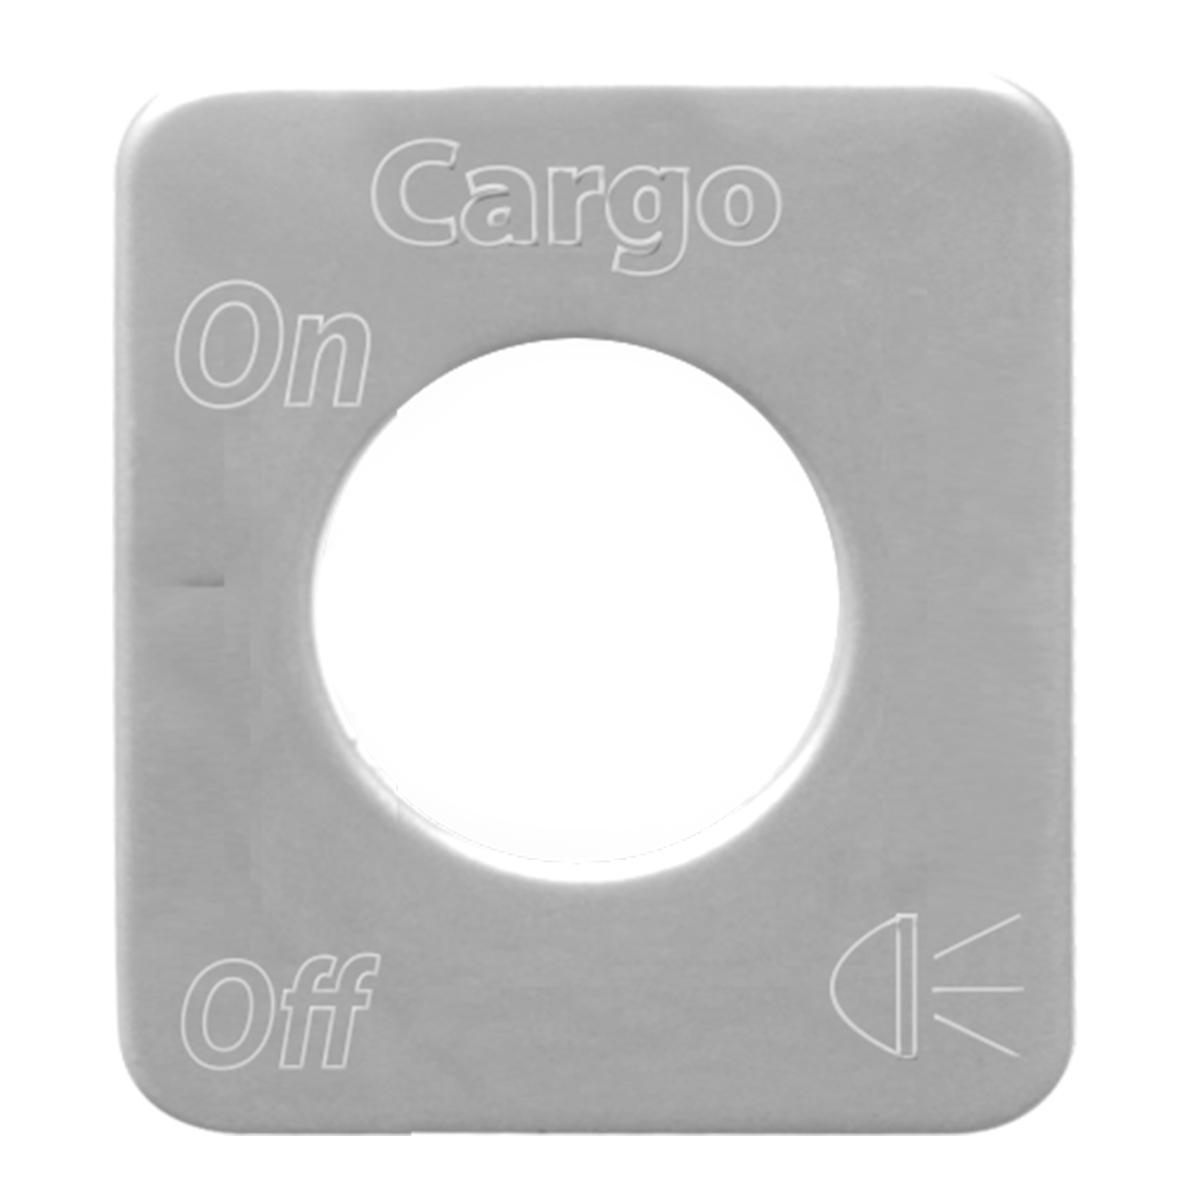 68529 Stainless Steel Cargo Light Switch Plate for KW